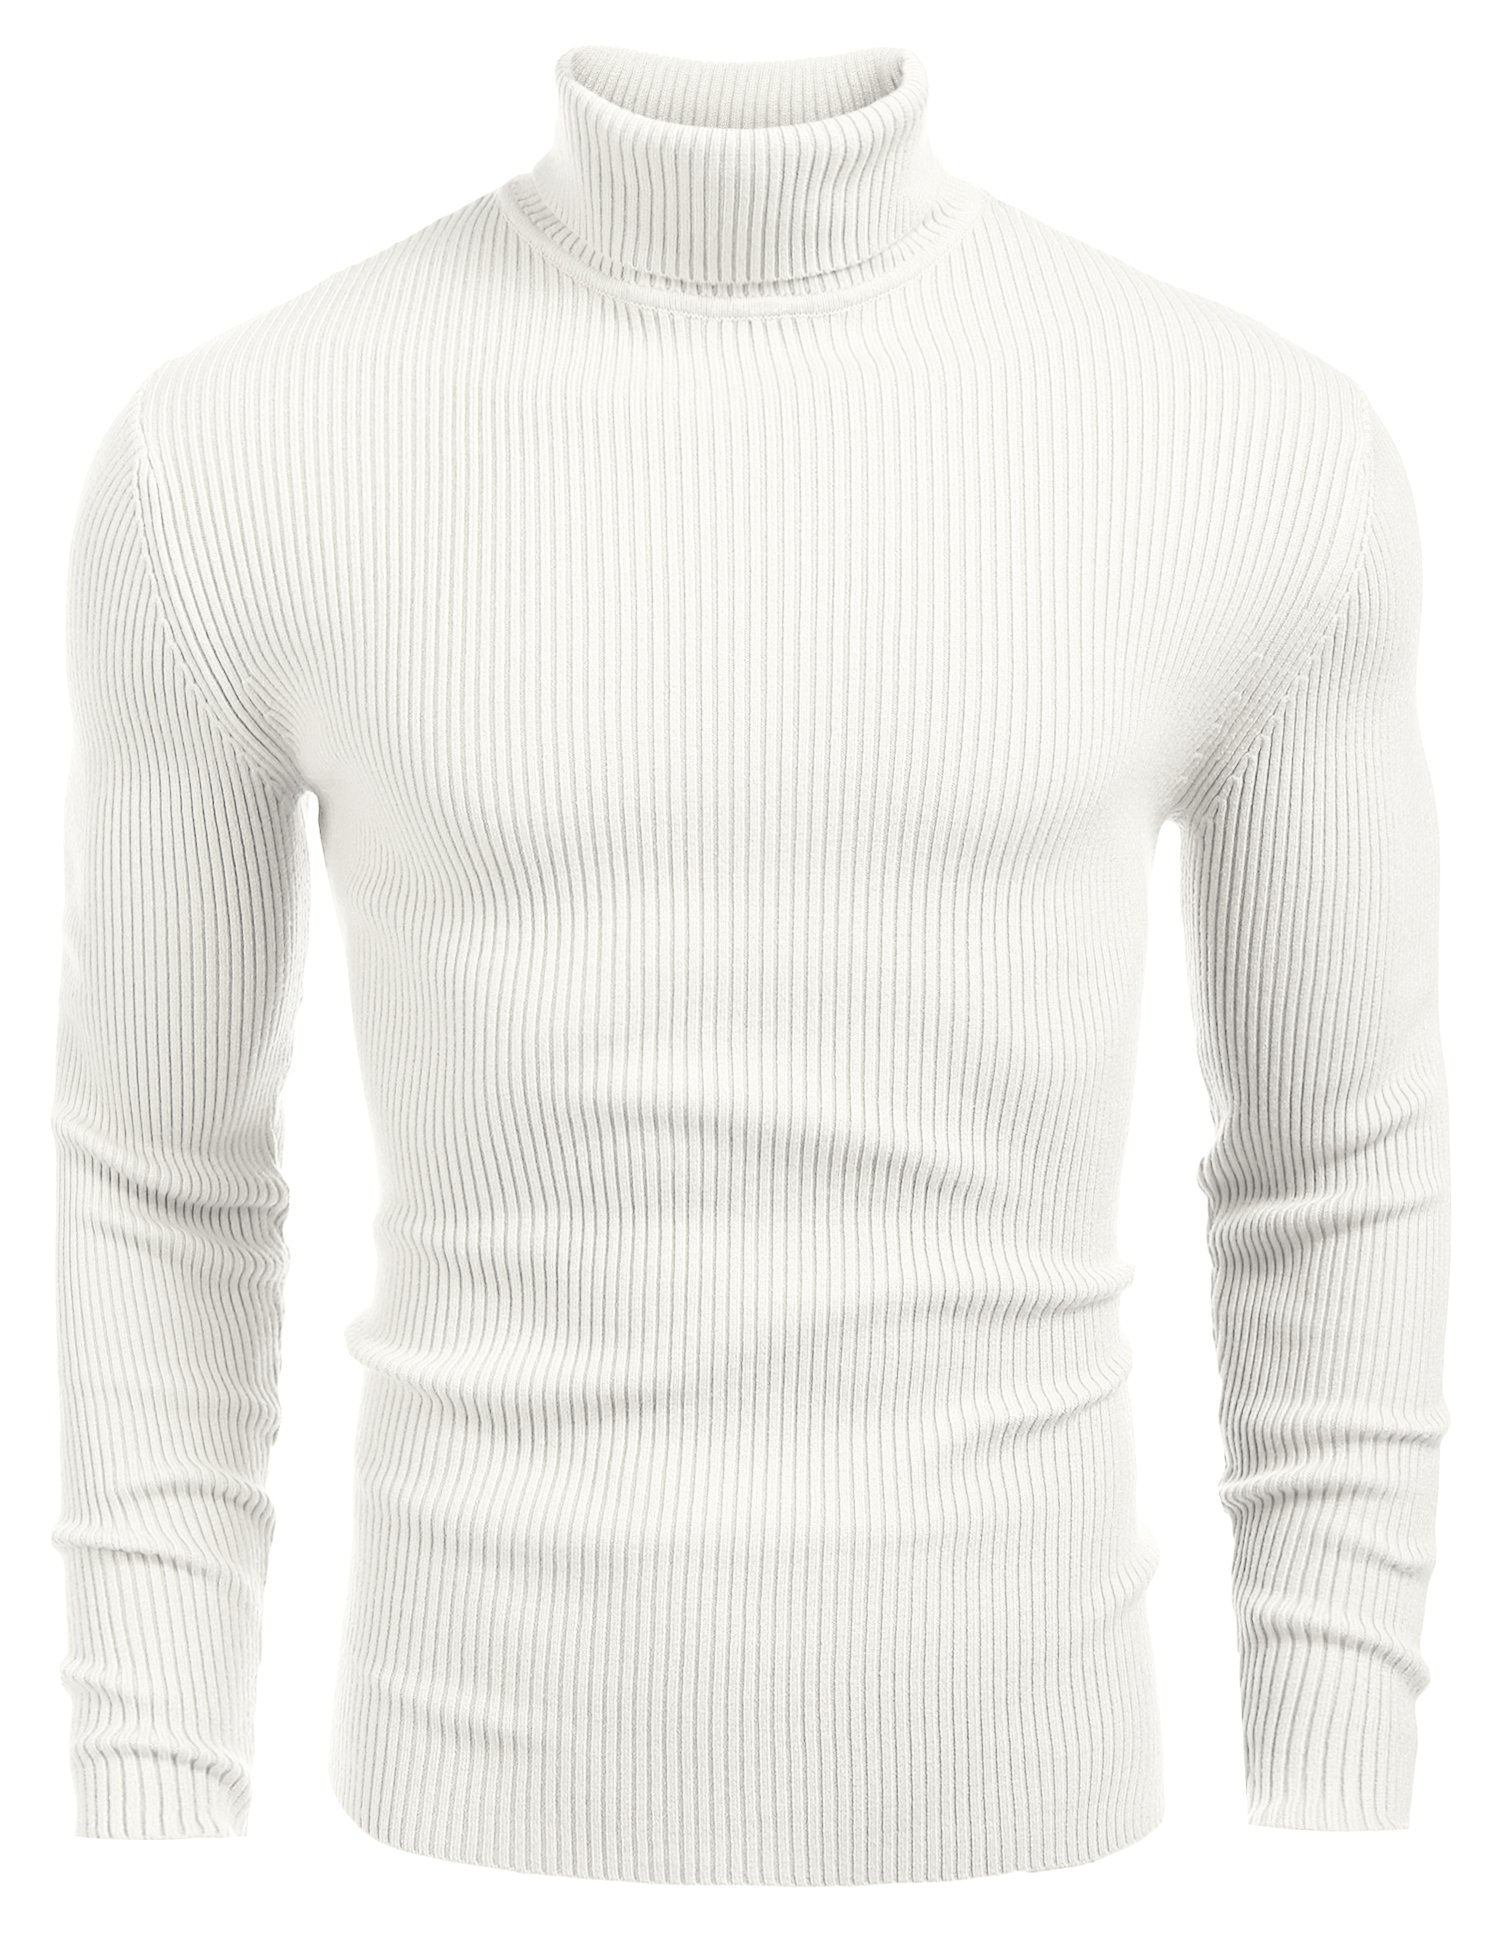 Coofandy Mens Ribbed Slim Fit Knitted Pullover Turtleneck Sweater White Small